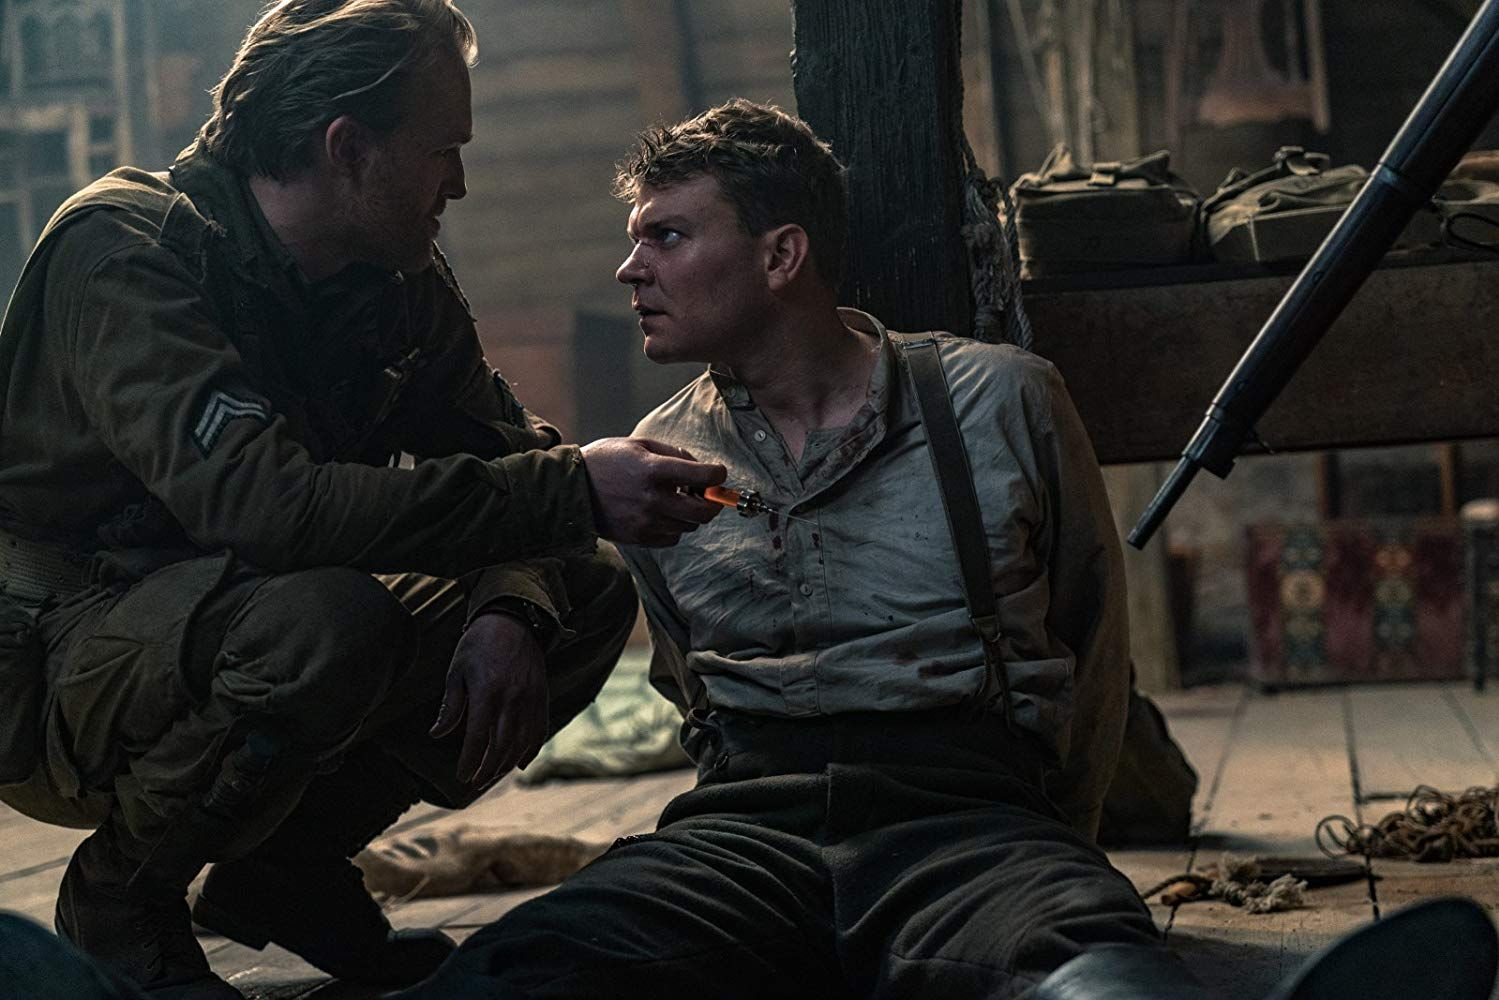 Overlord: Pilou Asbæk and Julius Avery on Their WWII Horror | Collider